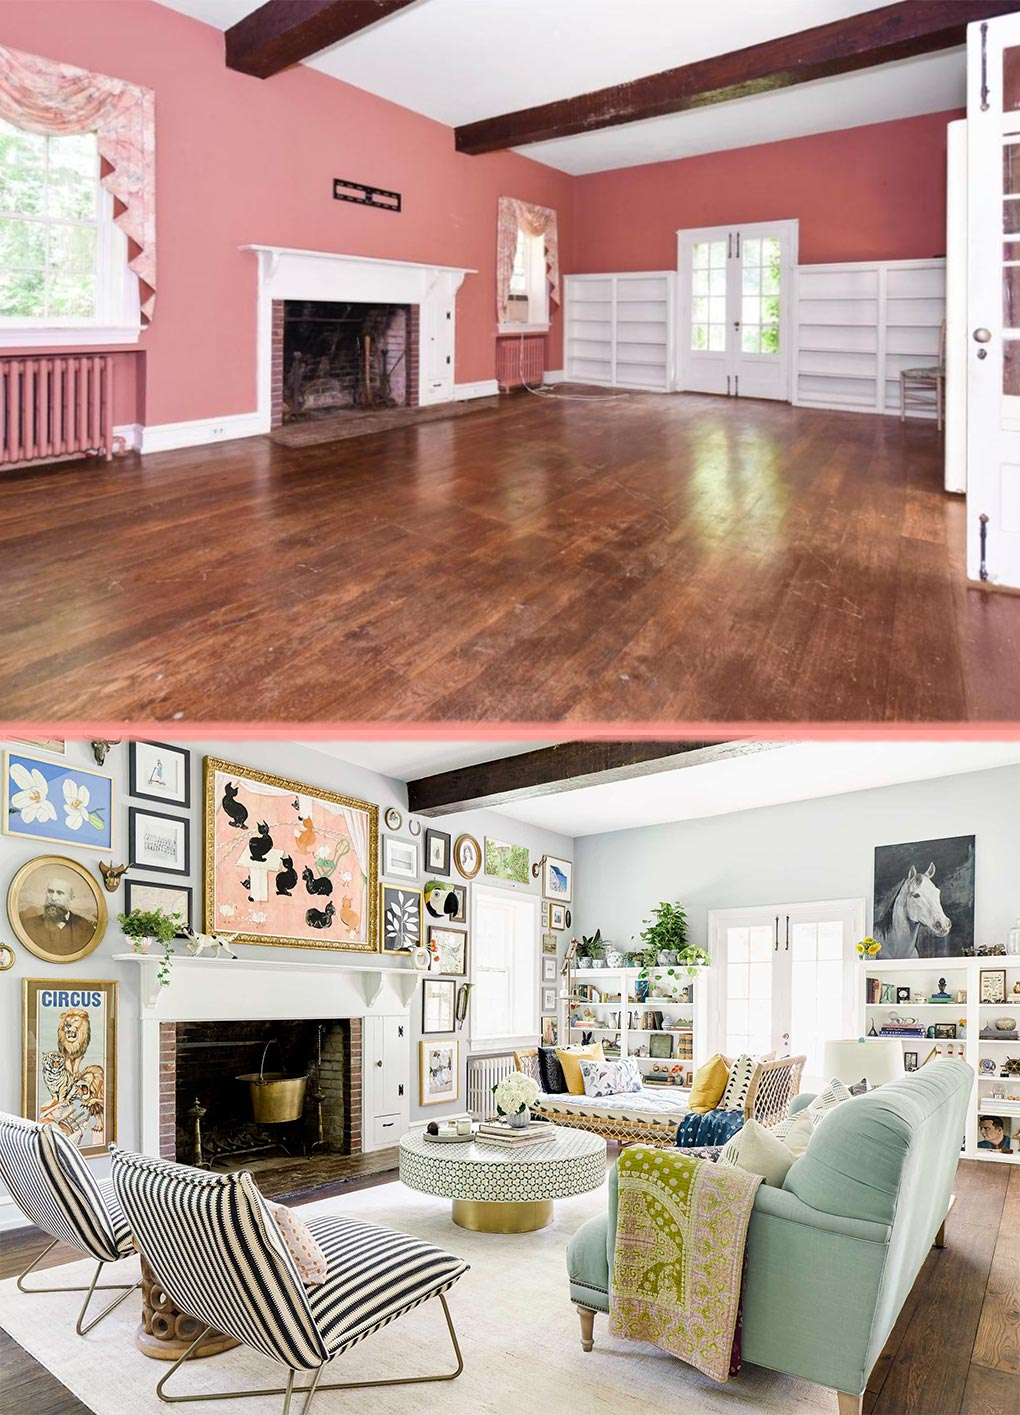 Before & After: Bringing Personal Style to a Traditional Home ...